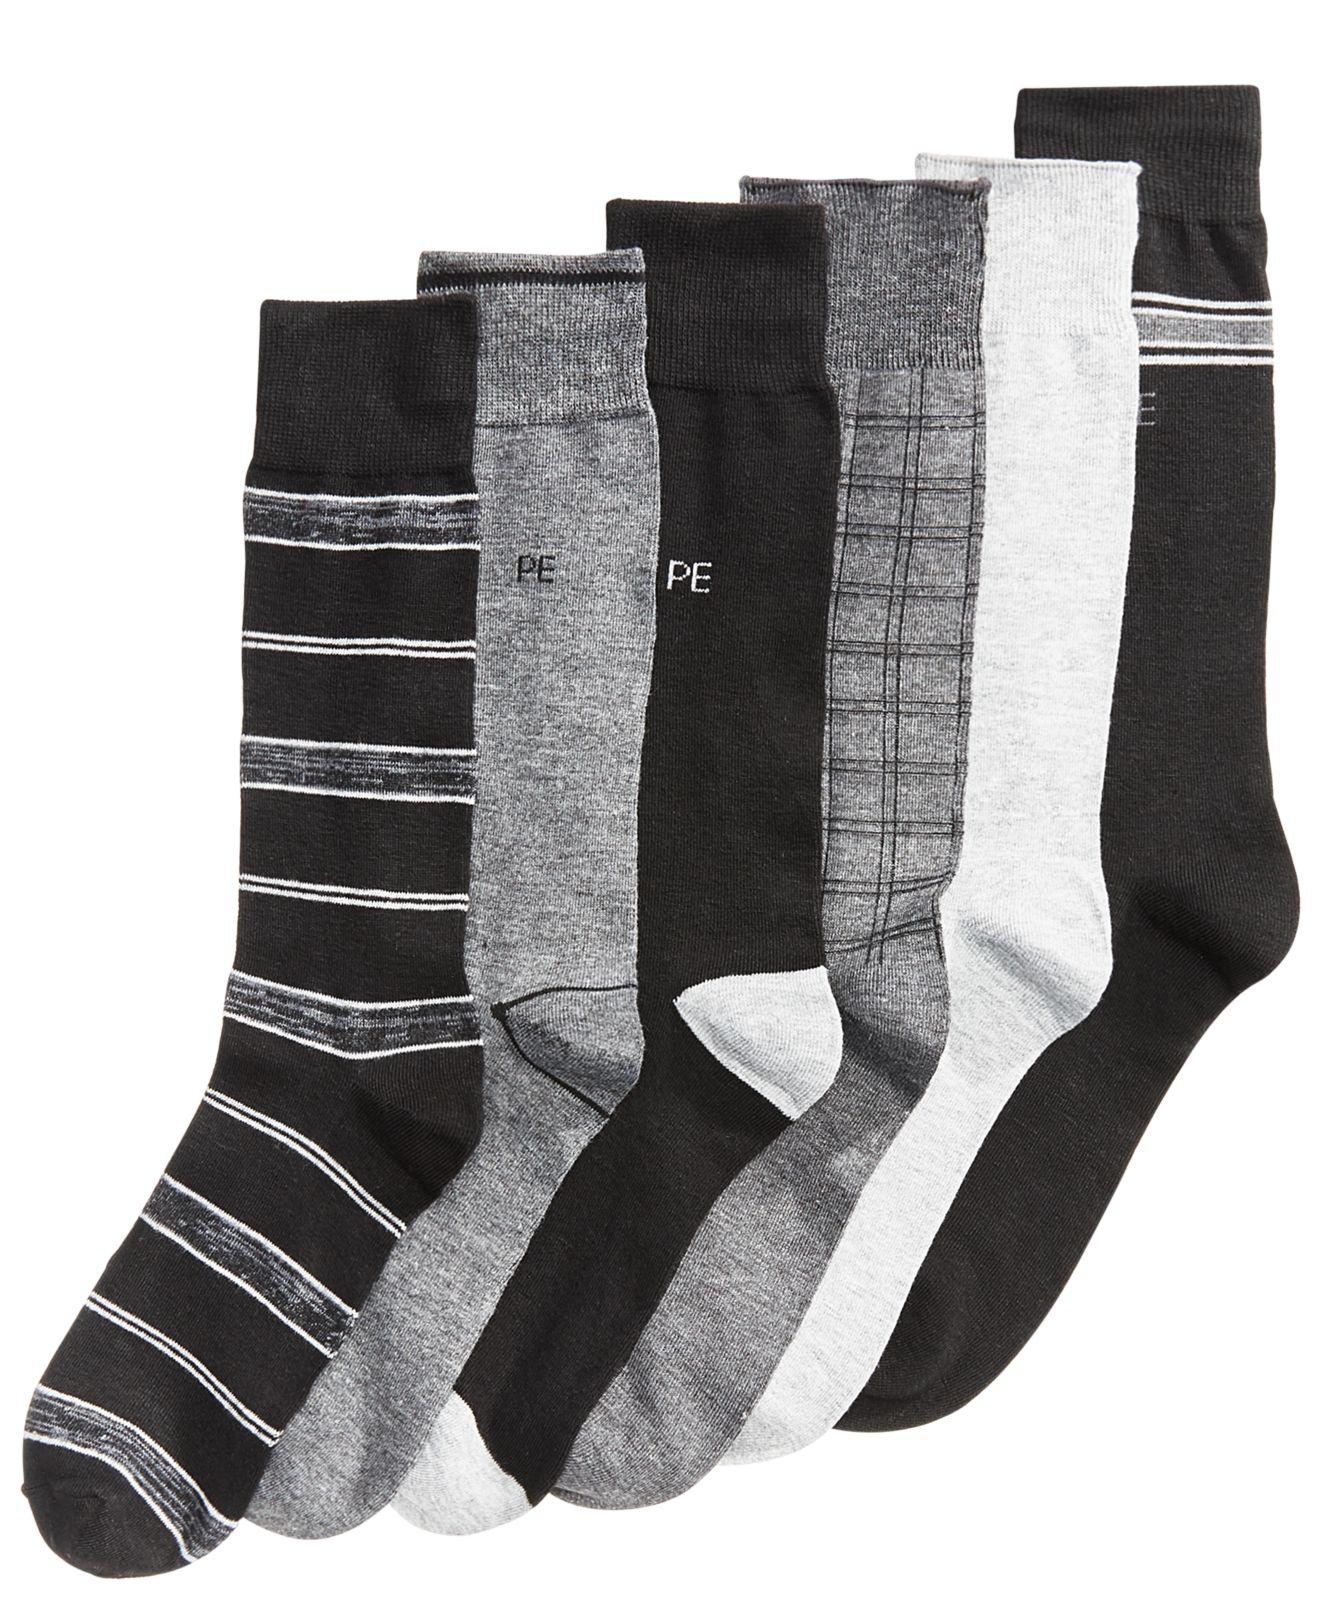 1a755062a1 Lyst - Perry Ellis 6-pk. Performance Dress Socks in Black for Men